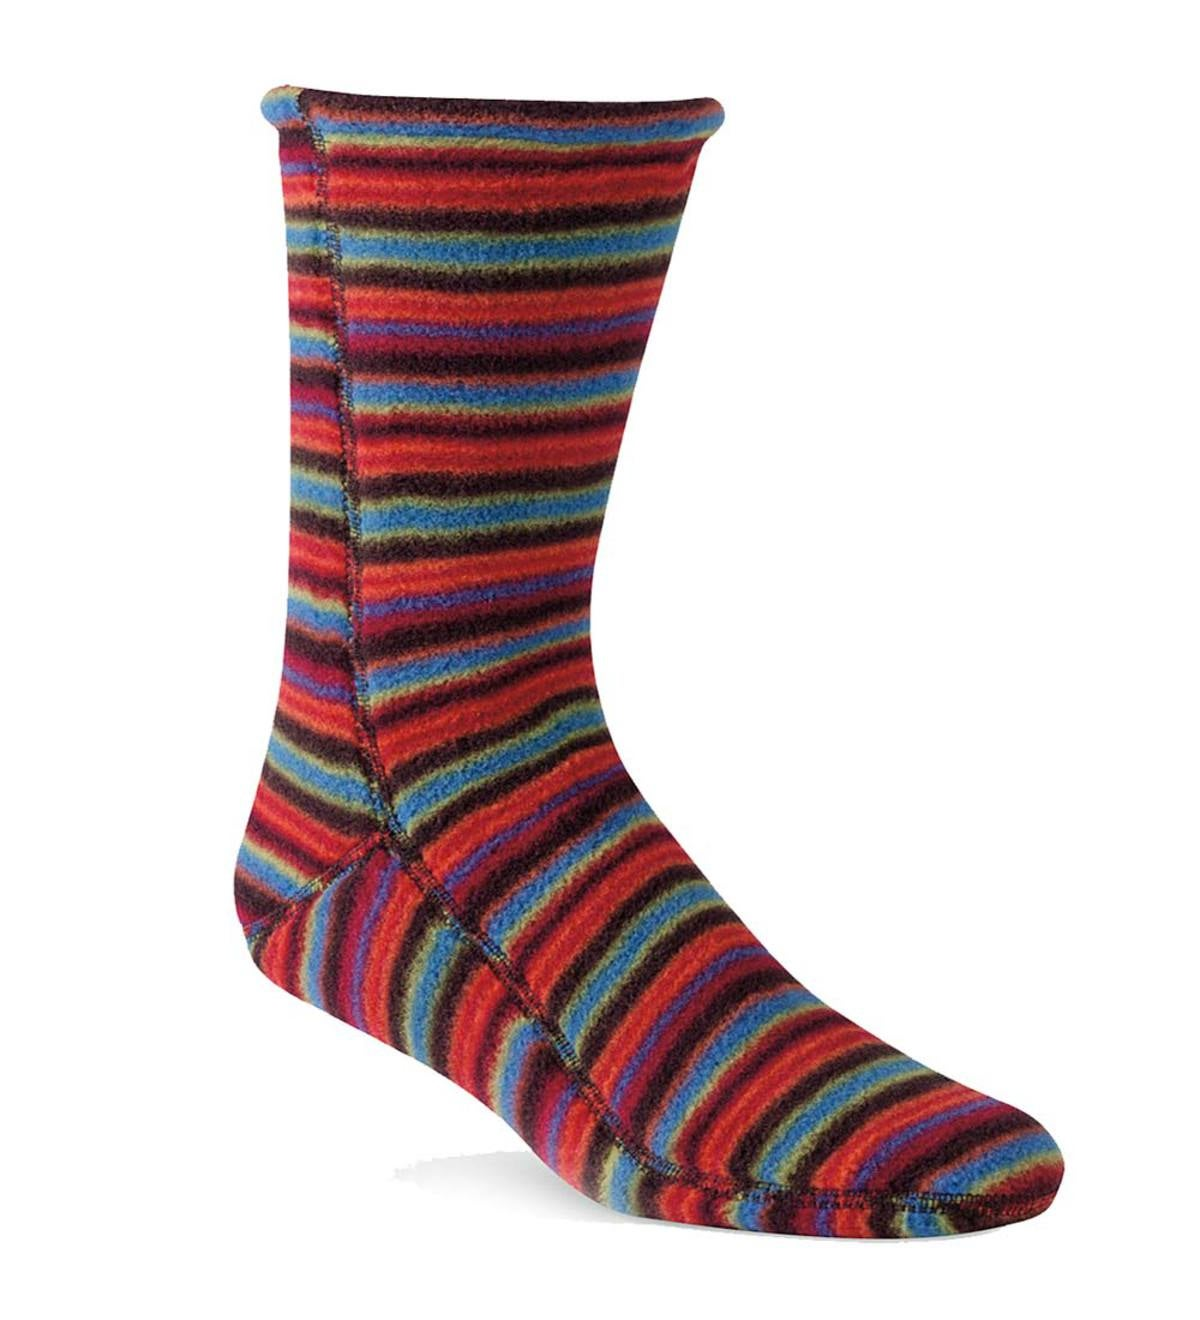 Sale! Acorn® Men's and Women's Fleece Socks In Fun Colors